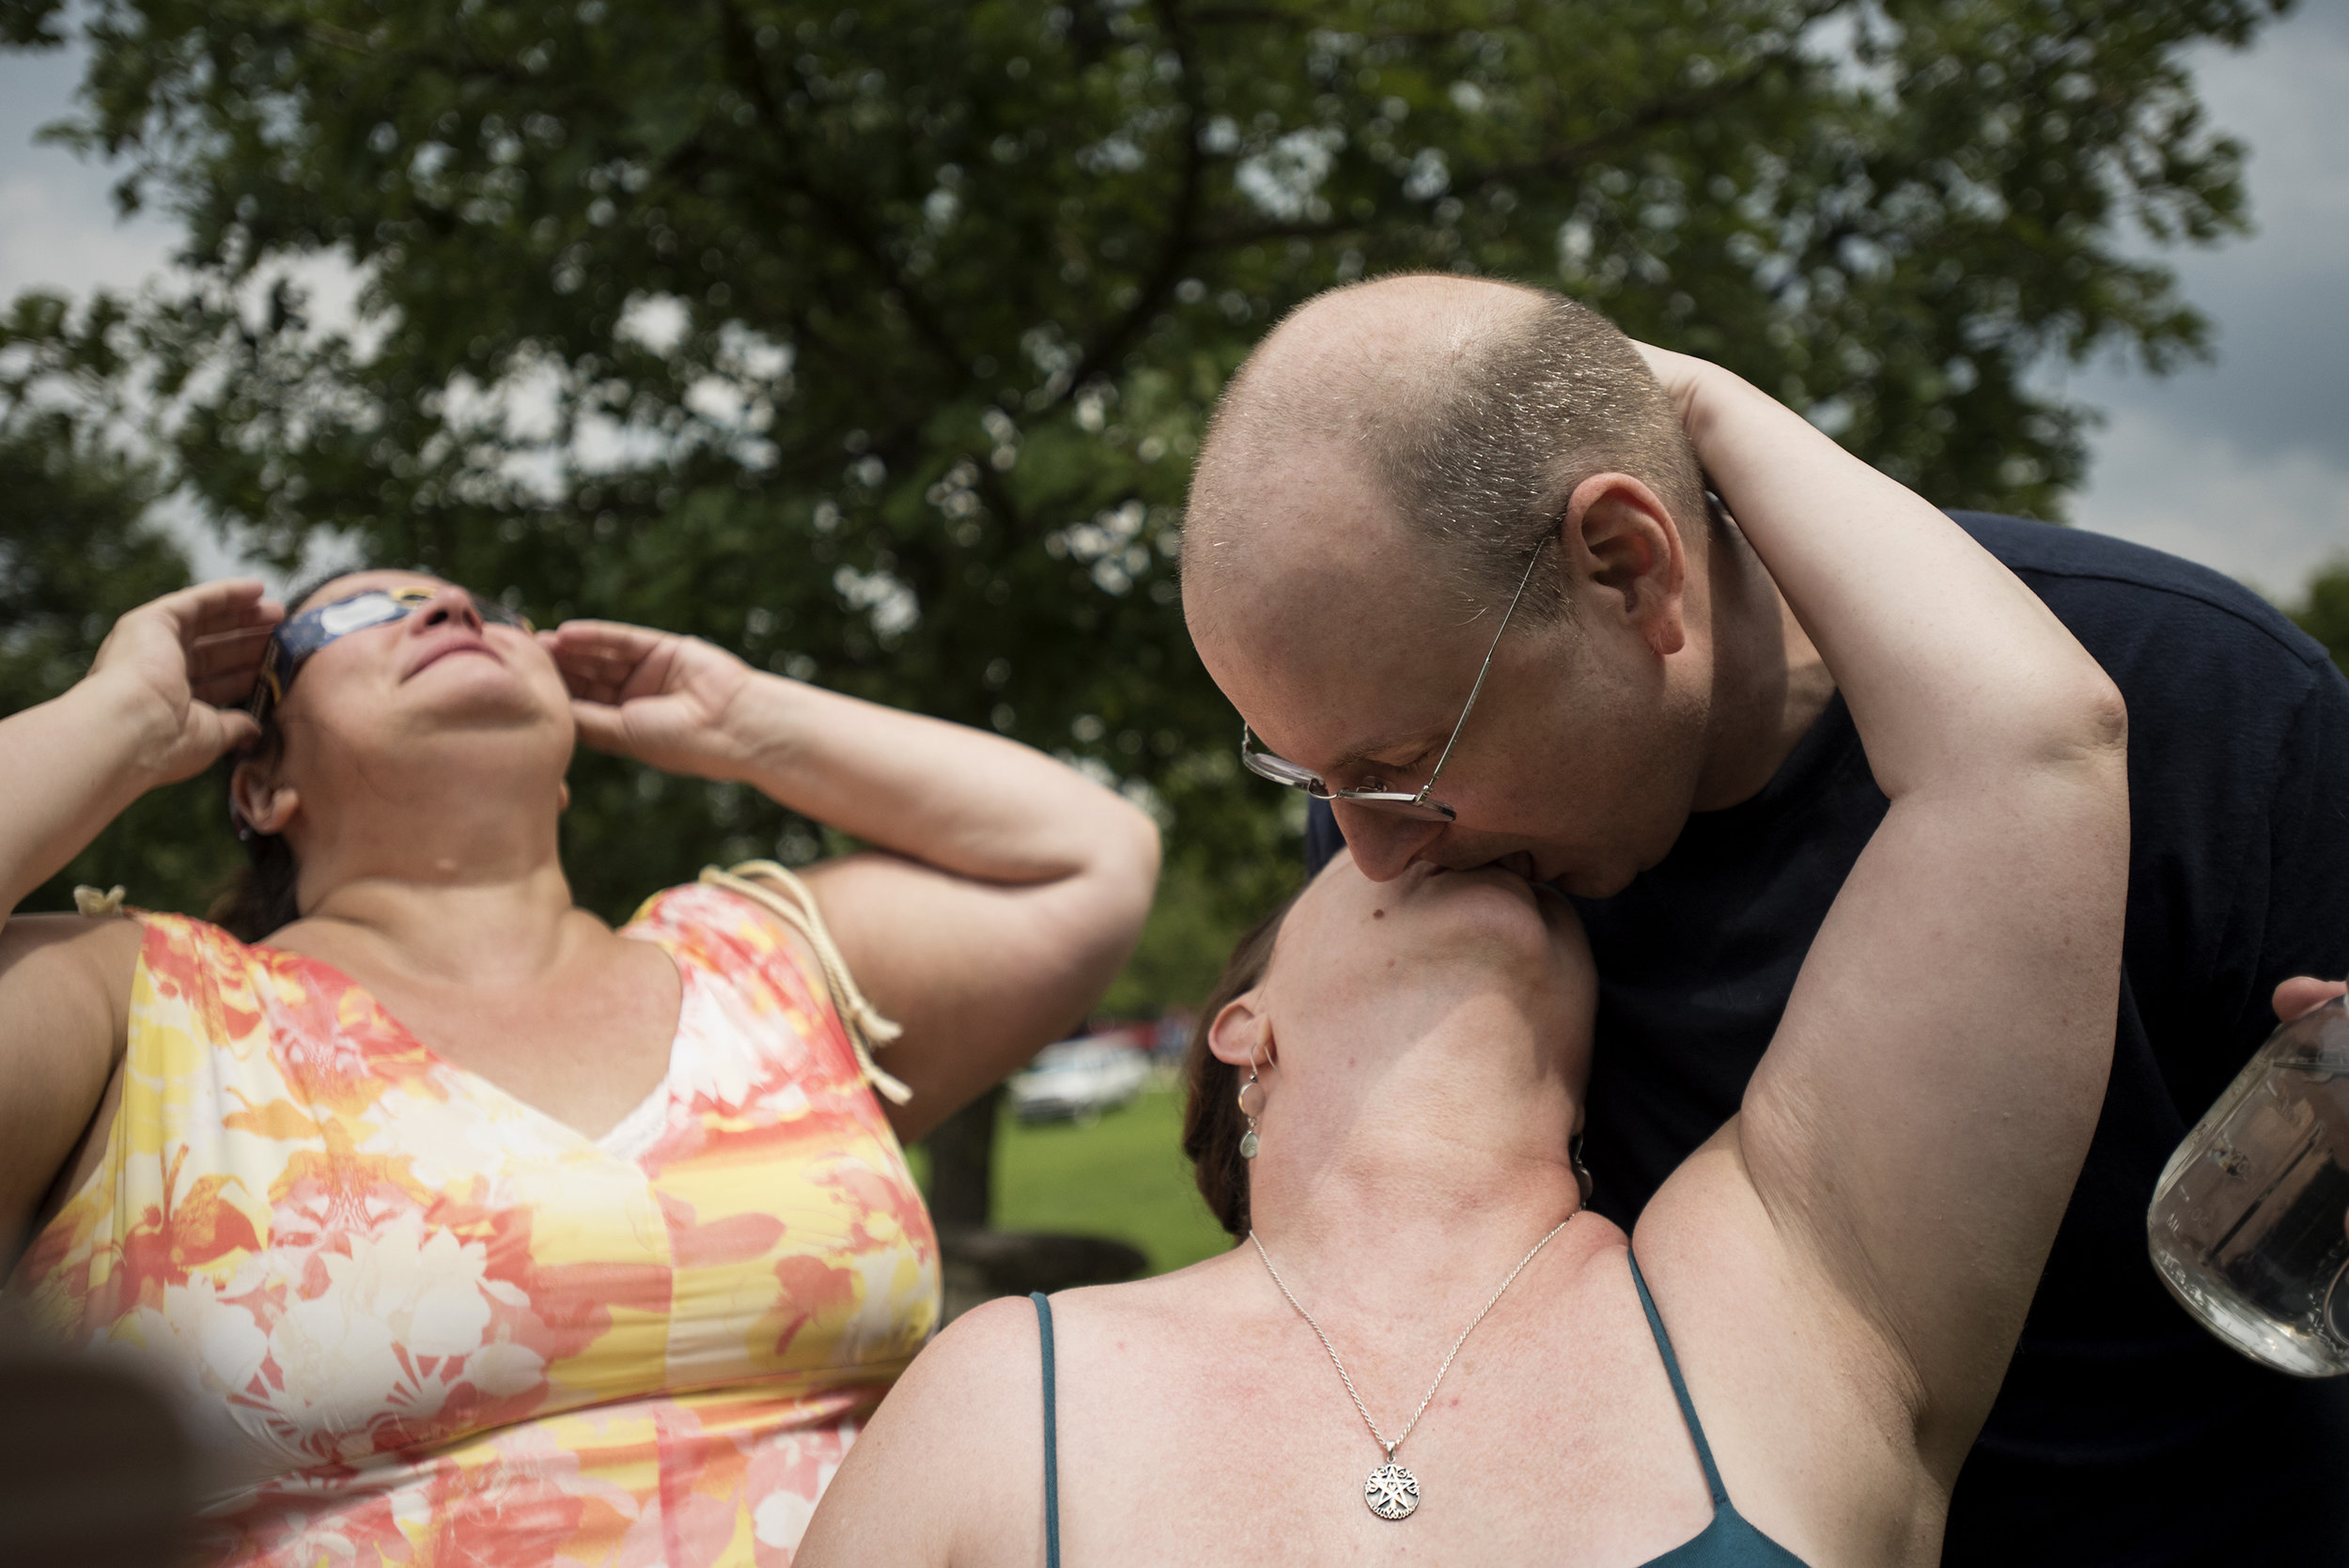 From left, Lisa Bruce looks at the eclipse as Kendal Gravitt and Bryant Biek kiss under the sun after witnessing totality.All of them have been involved with Oak Spirit Sanctuary since 1991. Gavitt and Biek met and were married at Oak Spirit over 20 years ago.